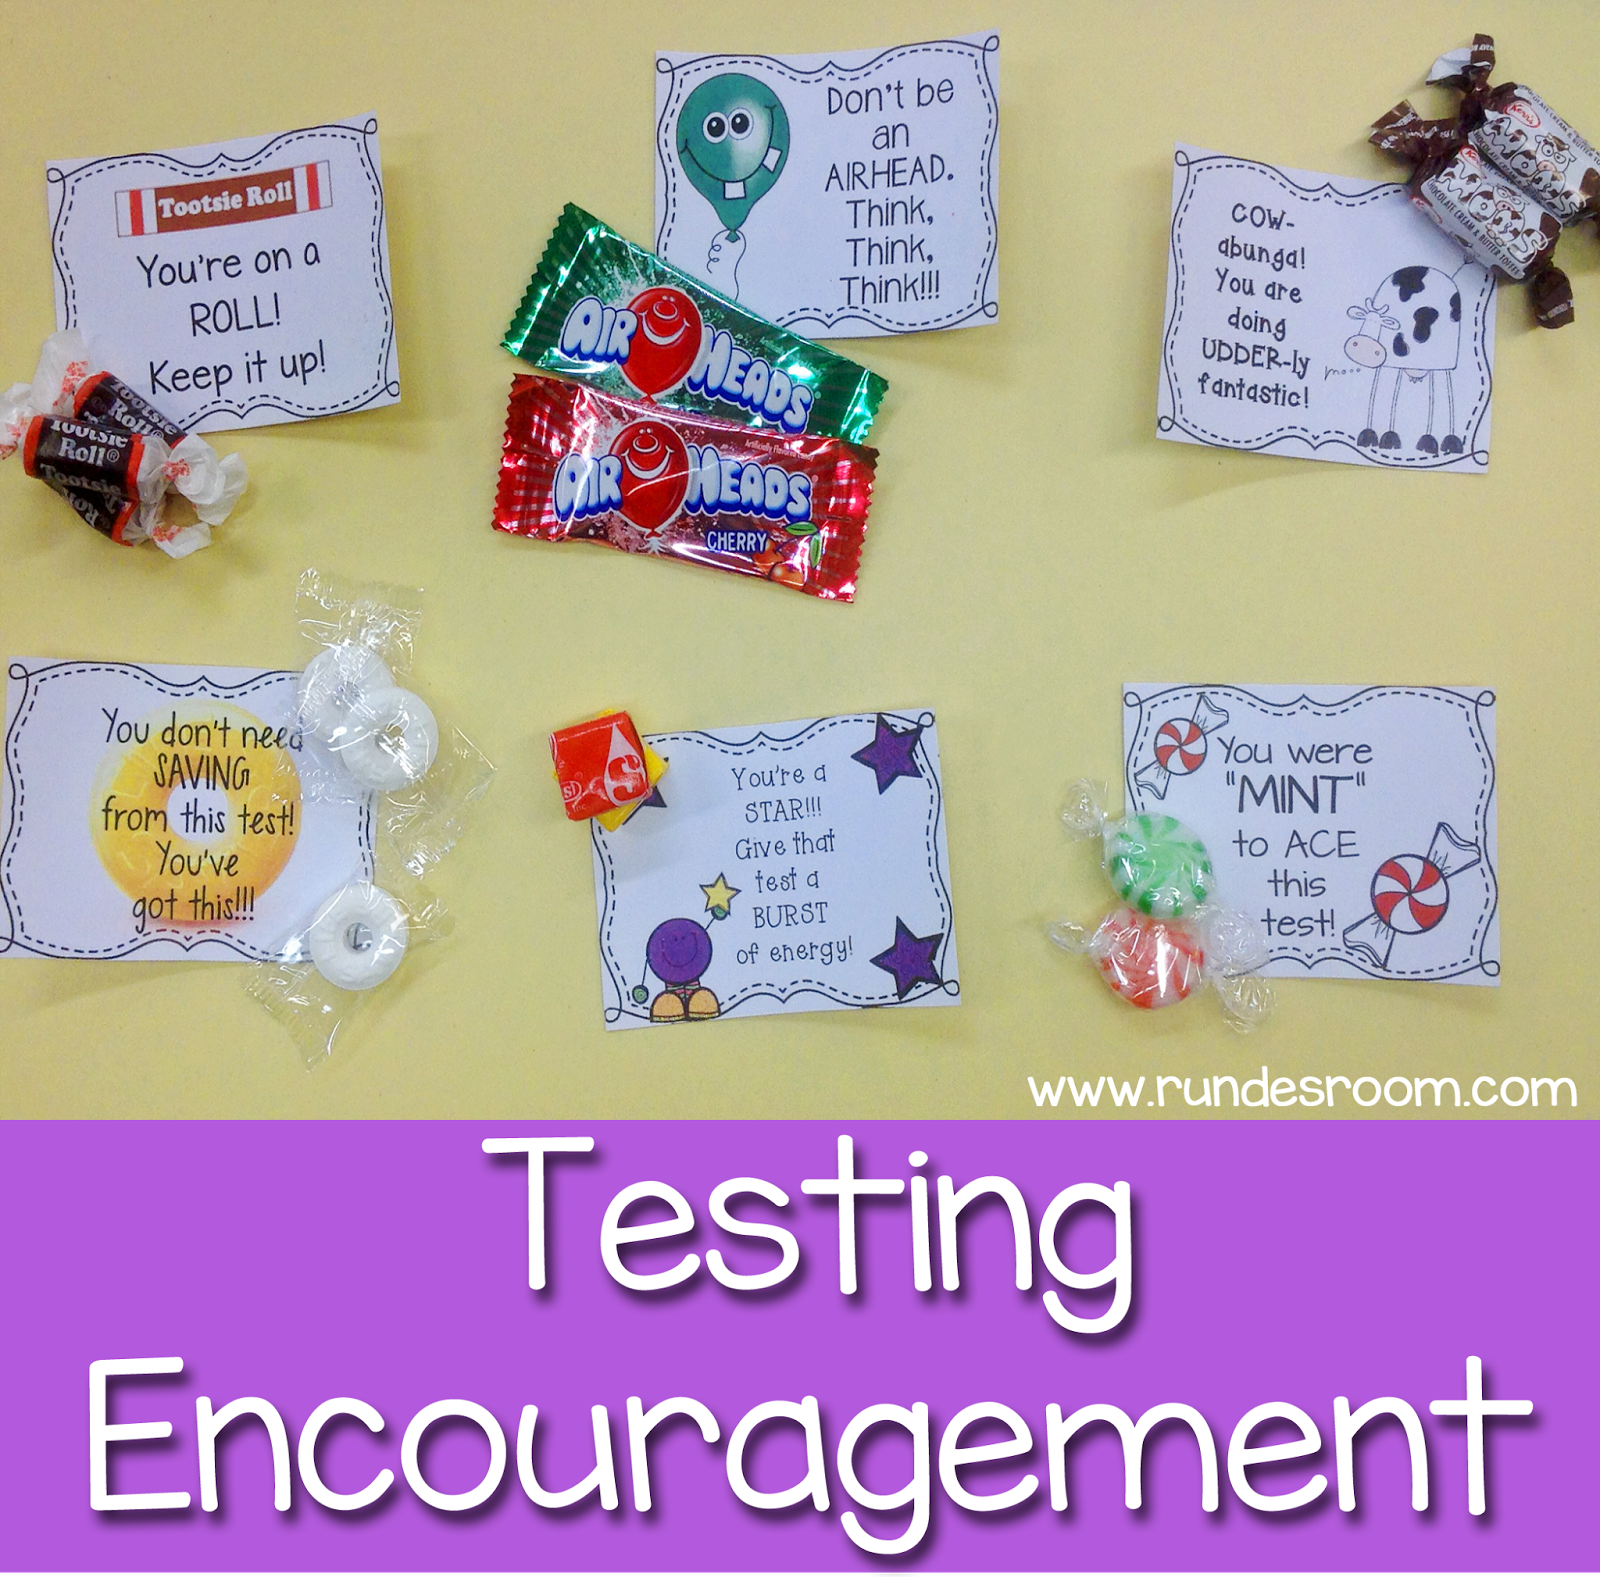 Testing quotes for elementary students - Some Sweet Testing Encouragement